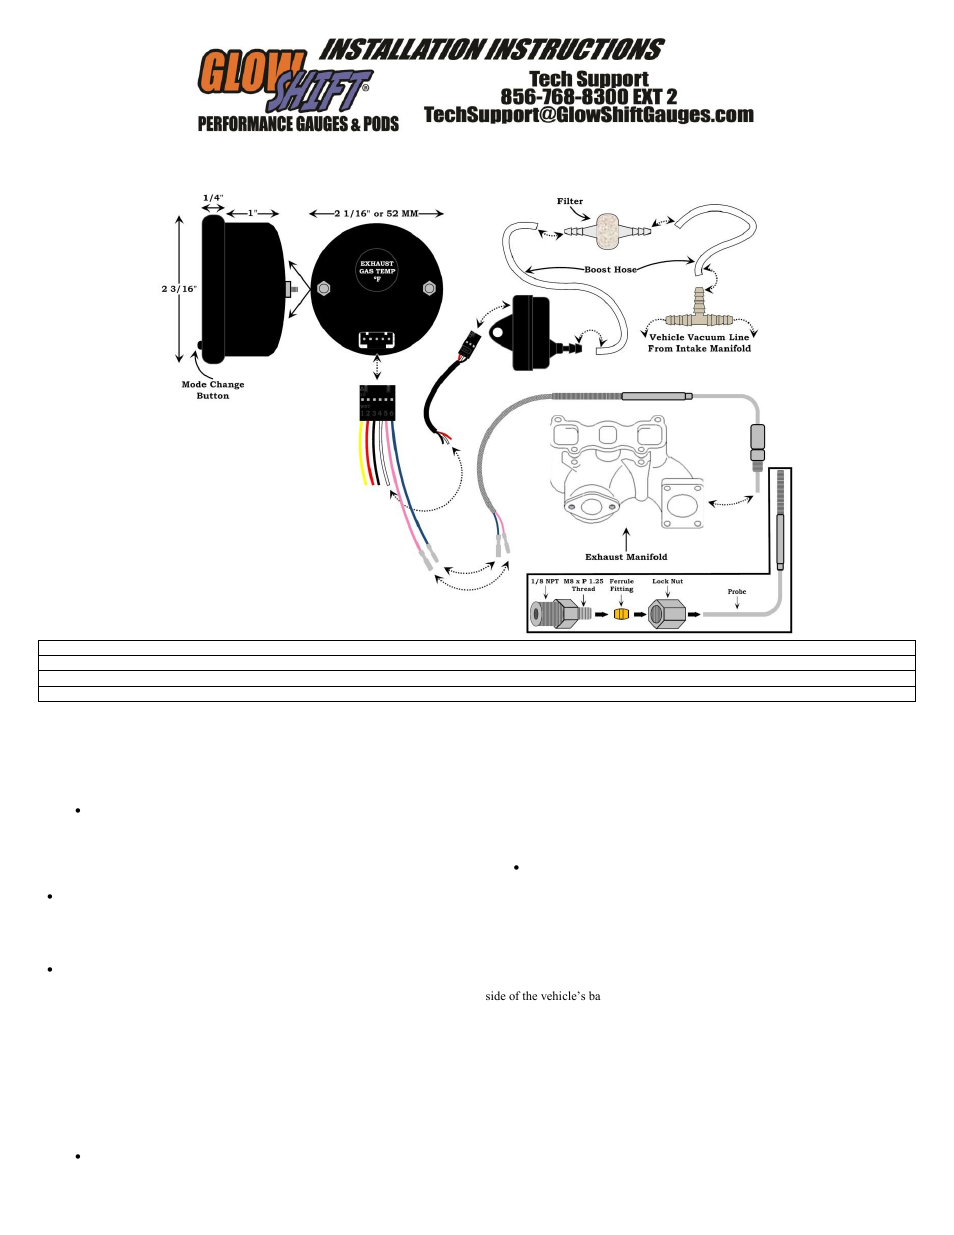 glowshift boost egt combo gauge page1 glowshift boost & egt combo gauge user manual 3 pages glowshift boost gauge wiring diagram at metegol.co